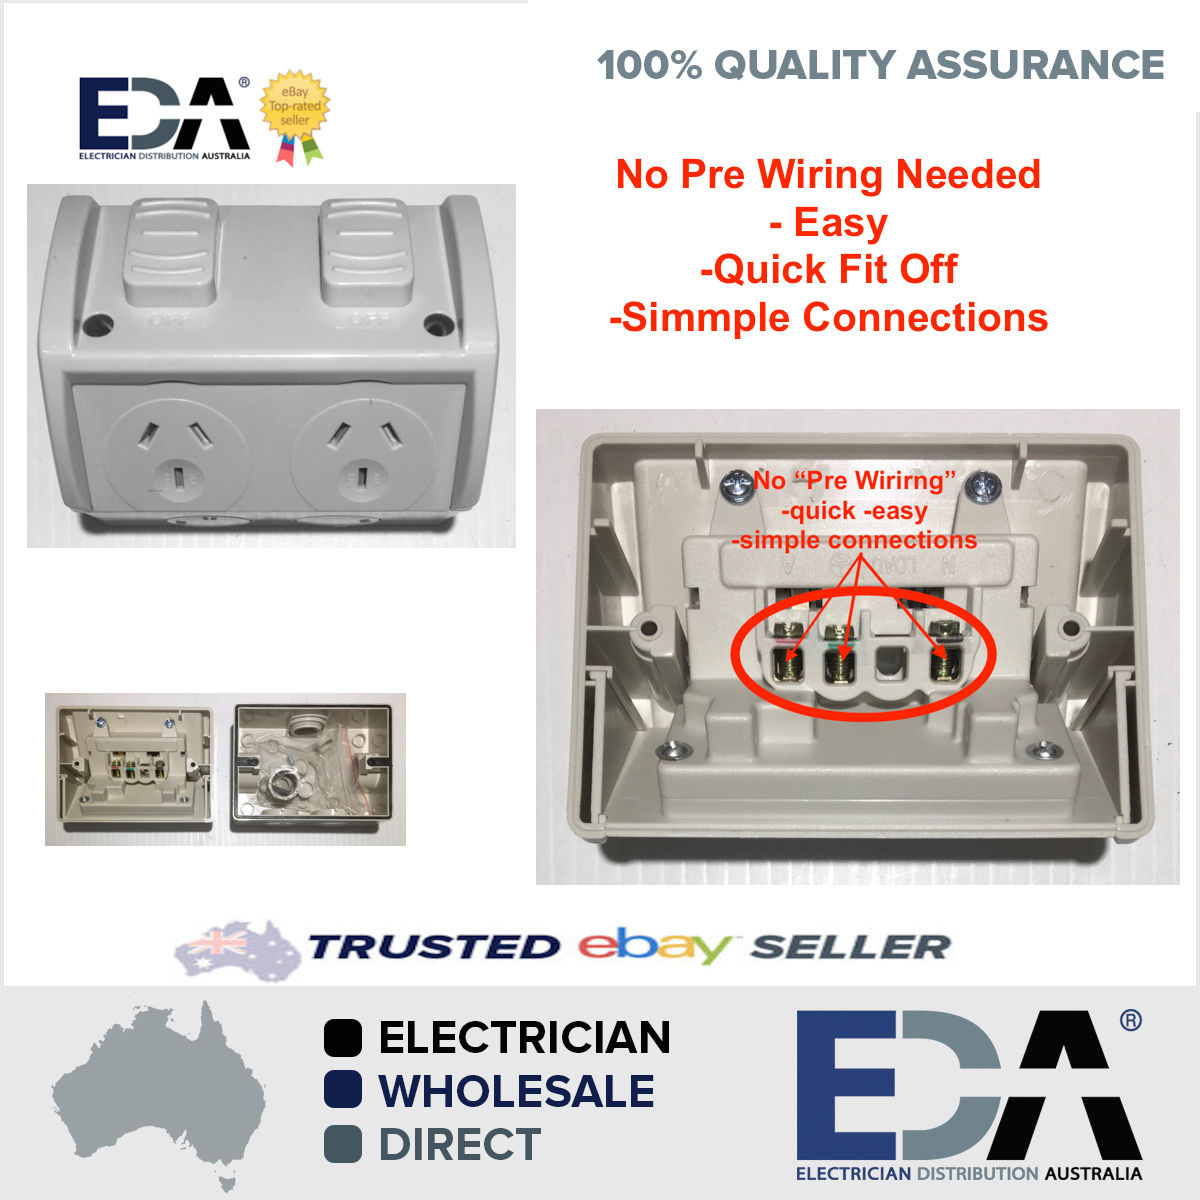 weatherproof dgpo no wiring double power point quick fit off easy rh edaonline com au wiring a new powerpoint wiring a power point australia